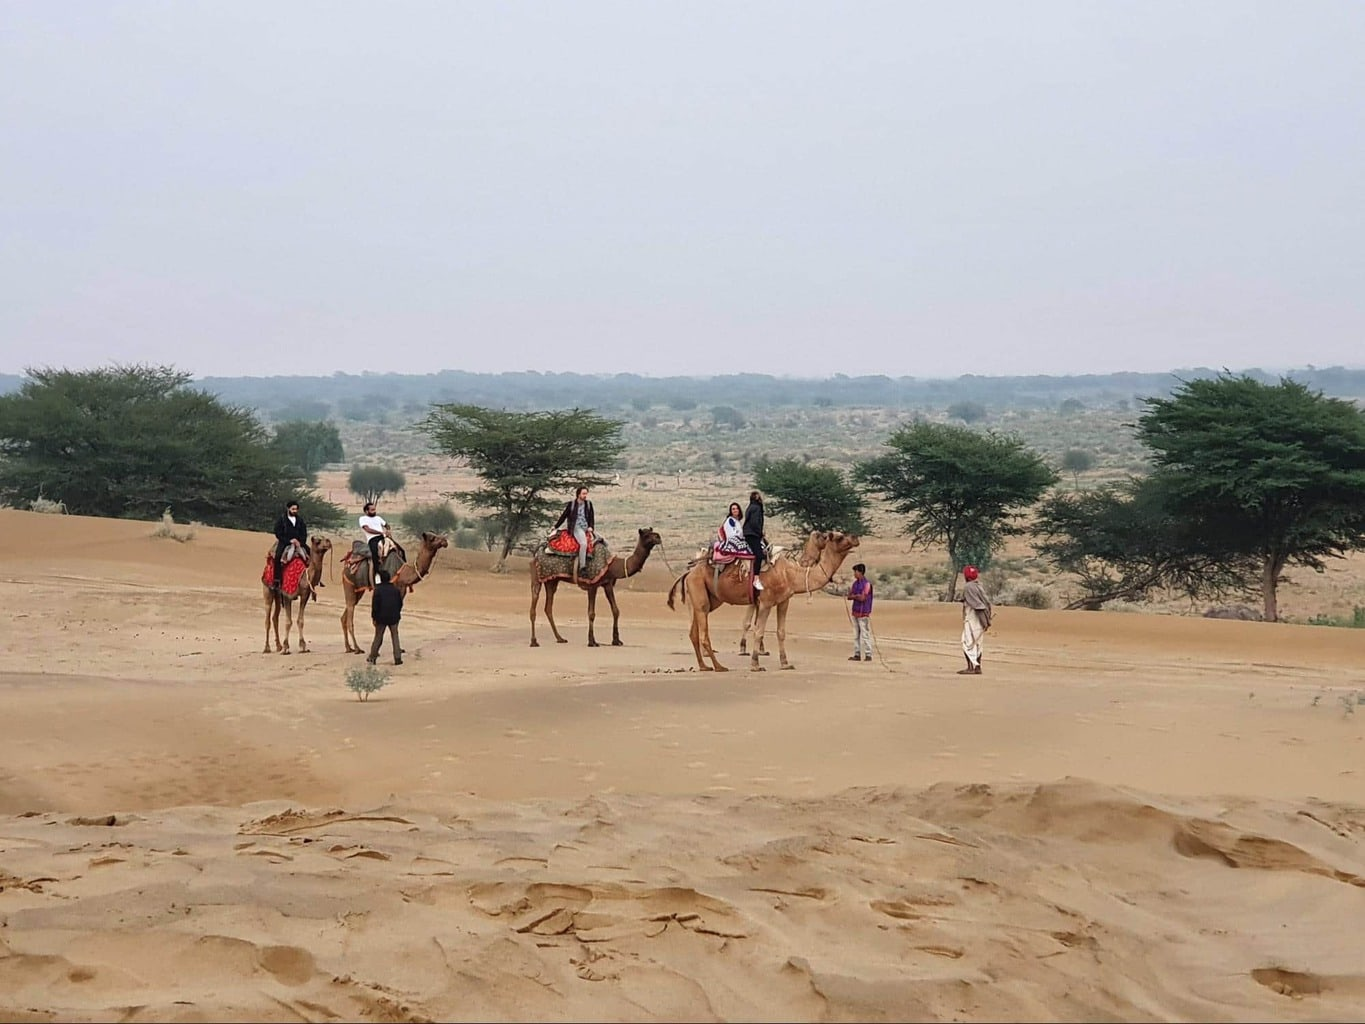 Desert safari, but don't ride the camels